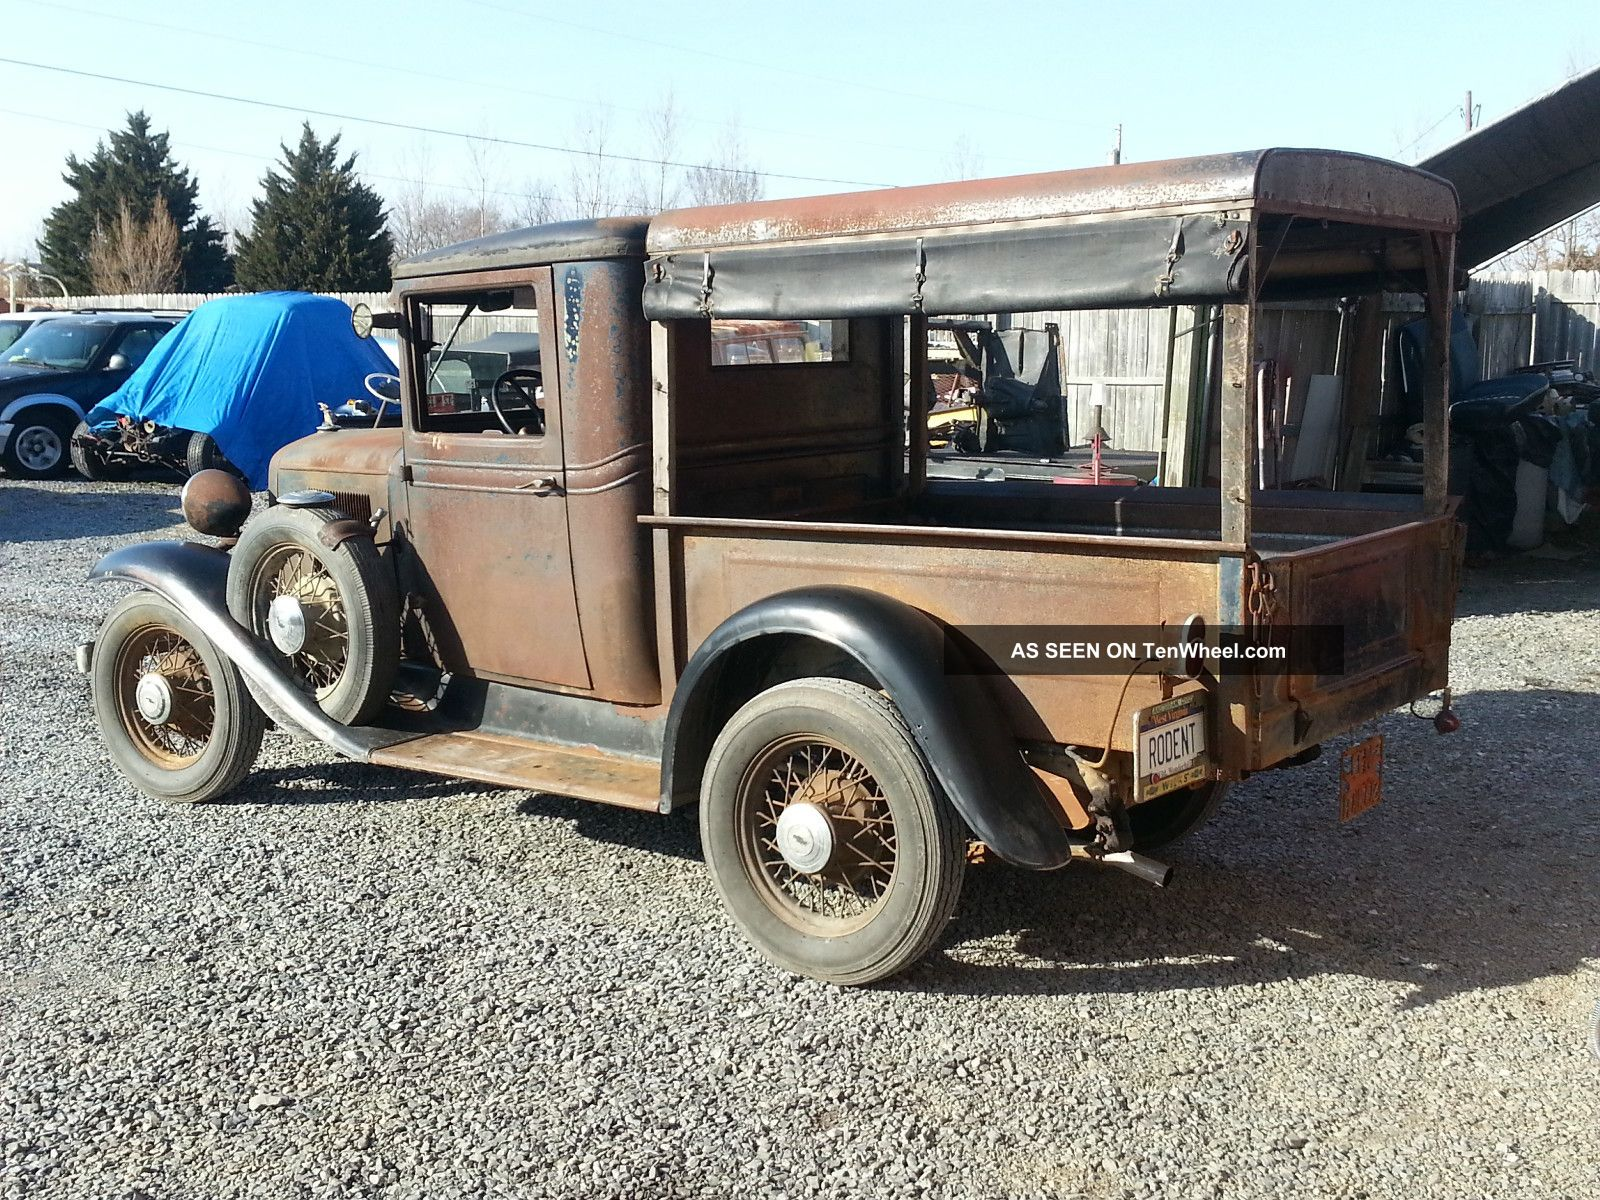 1933 Chevrolet Truck Canopy Express Chevy Rare Jalopy Pickup Hot Rat Rod 32 31 Other Pickups ... & 1933 Chevrolet Truck Canopy Express Chevy Rare Jalopy Pickup Hot ...